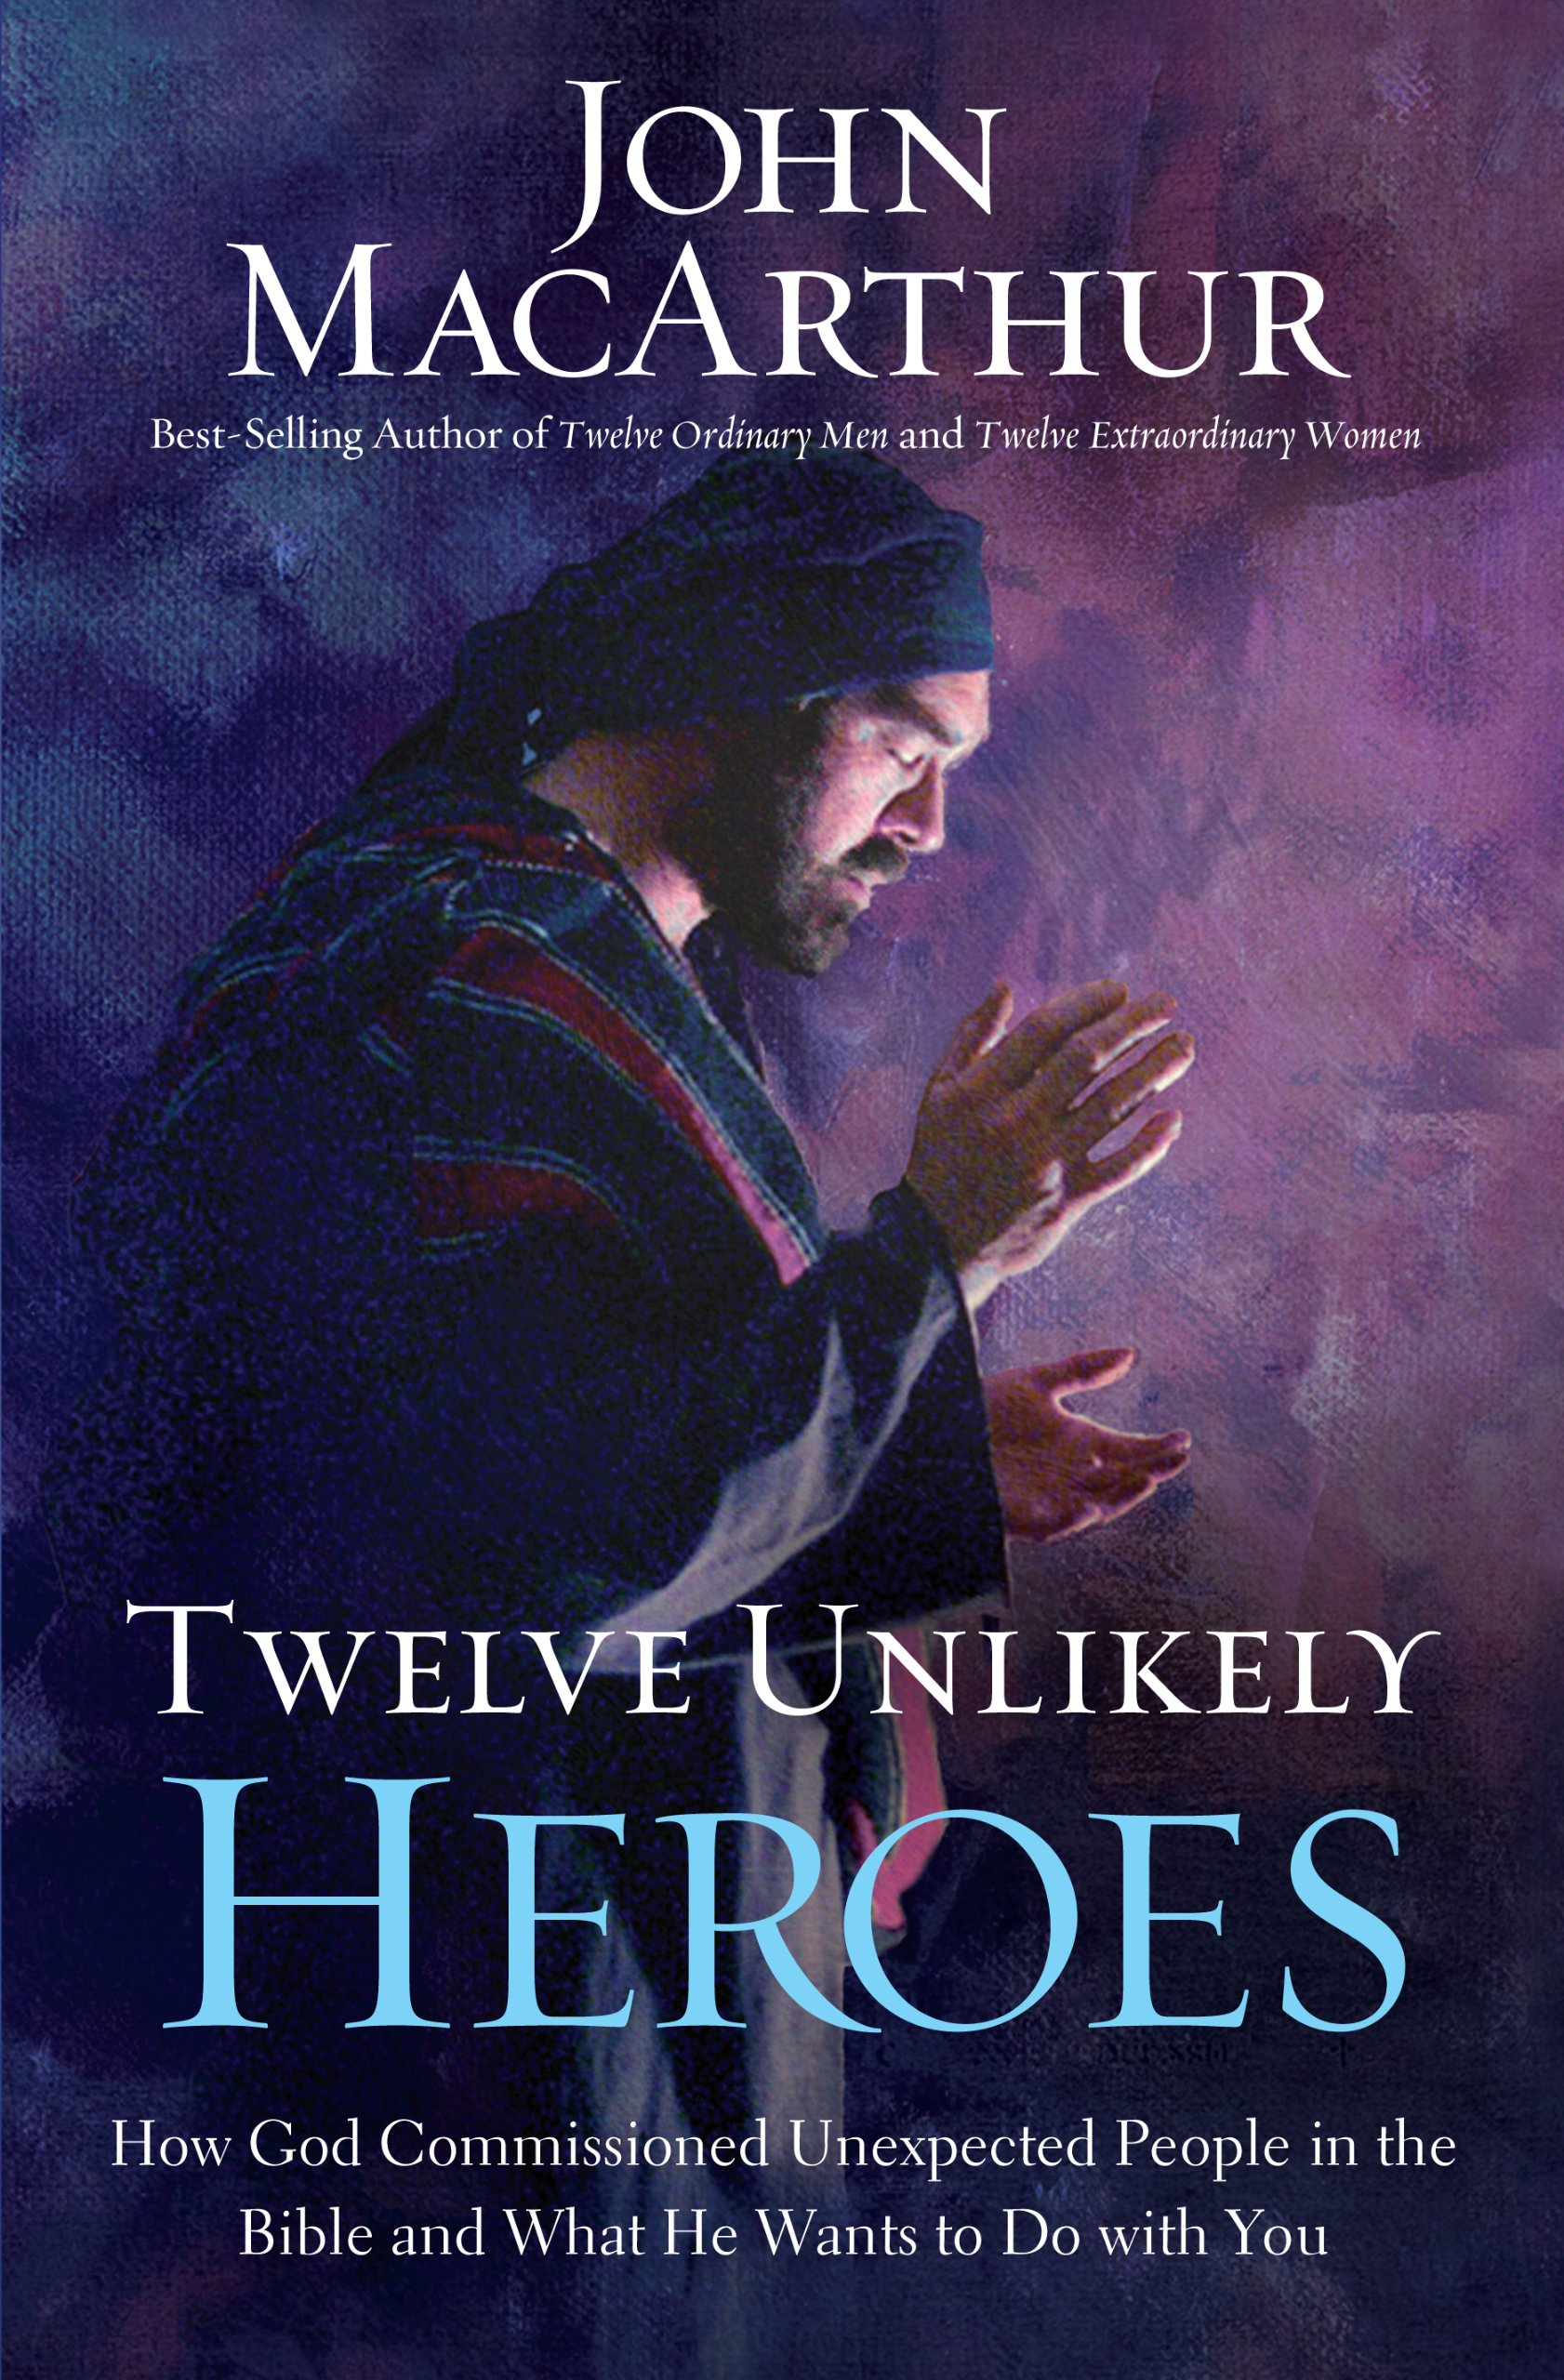 Twelve Unlikely Heroes: How God Commissioned Unexpected People in the Bible  and What He Wants to Do With You (Christian Large Print Originals): John ...